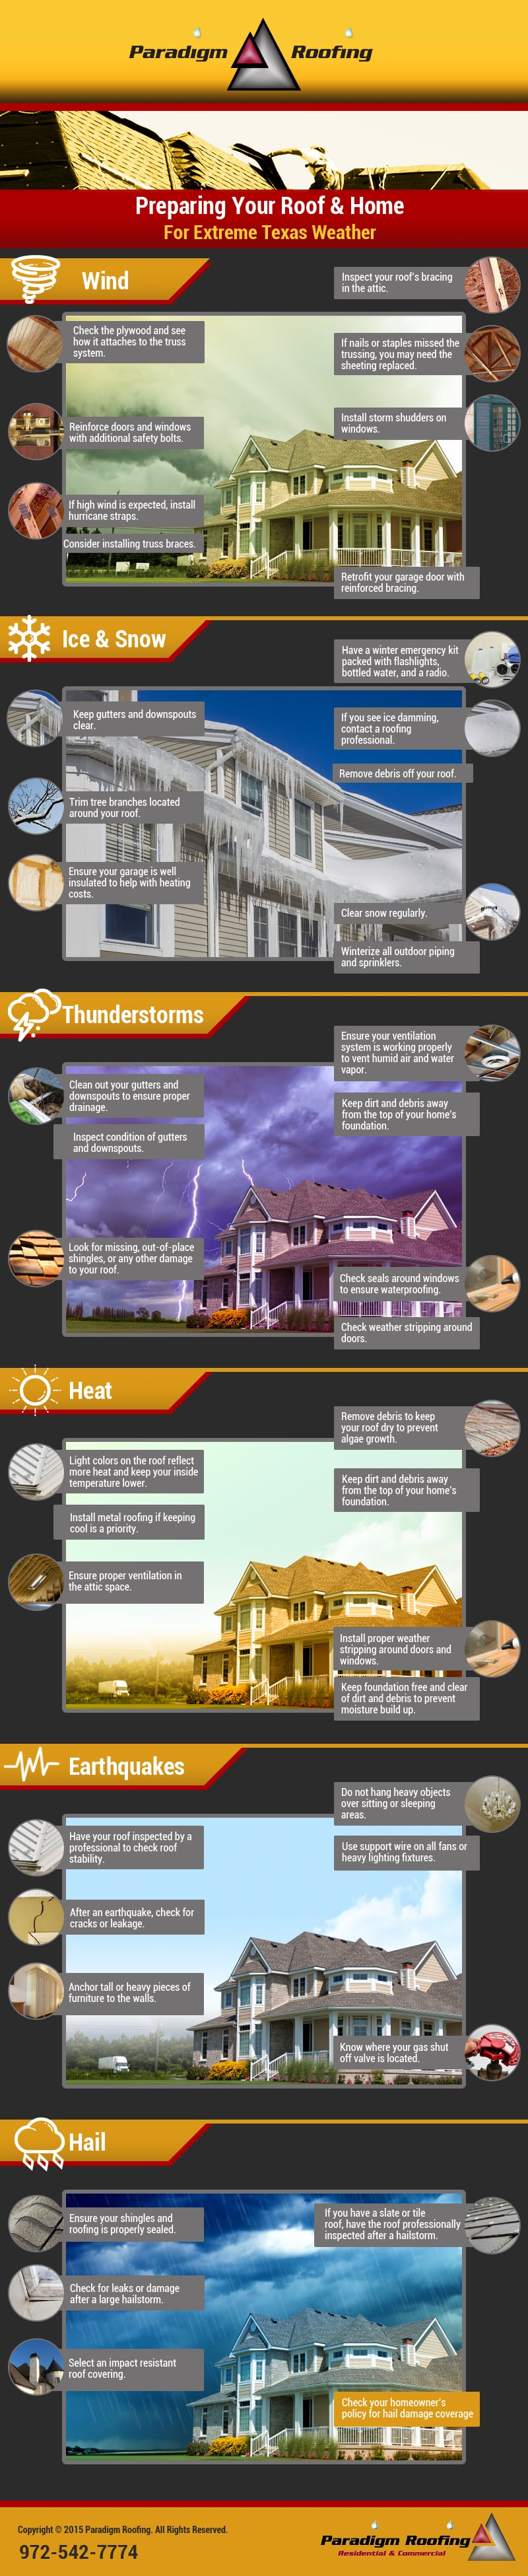 protecting your roof in extreme Texas weather